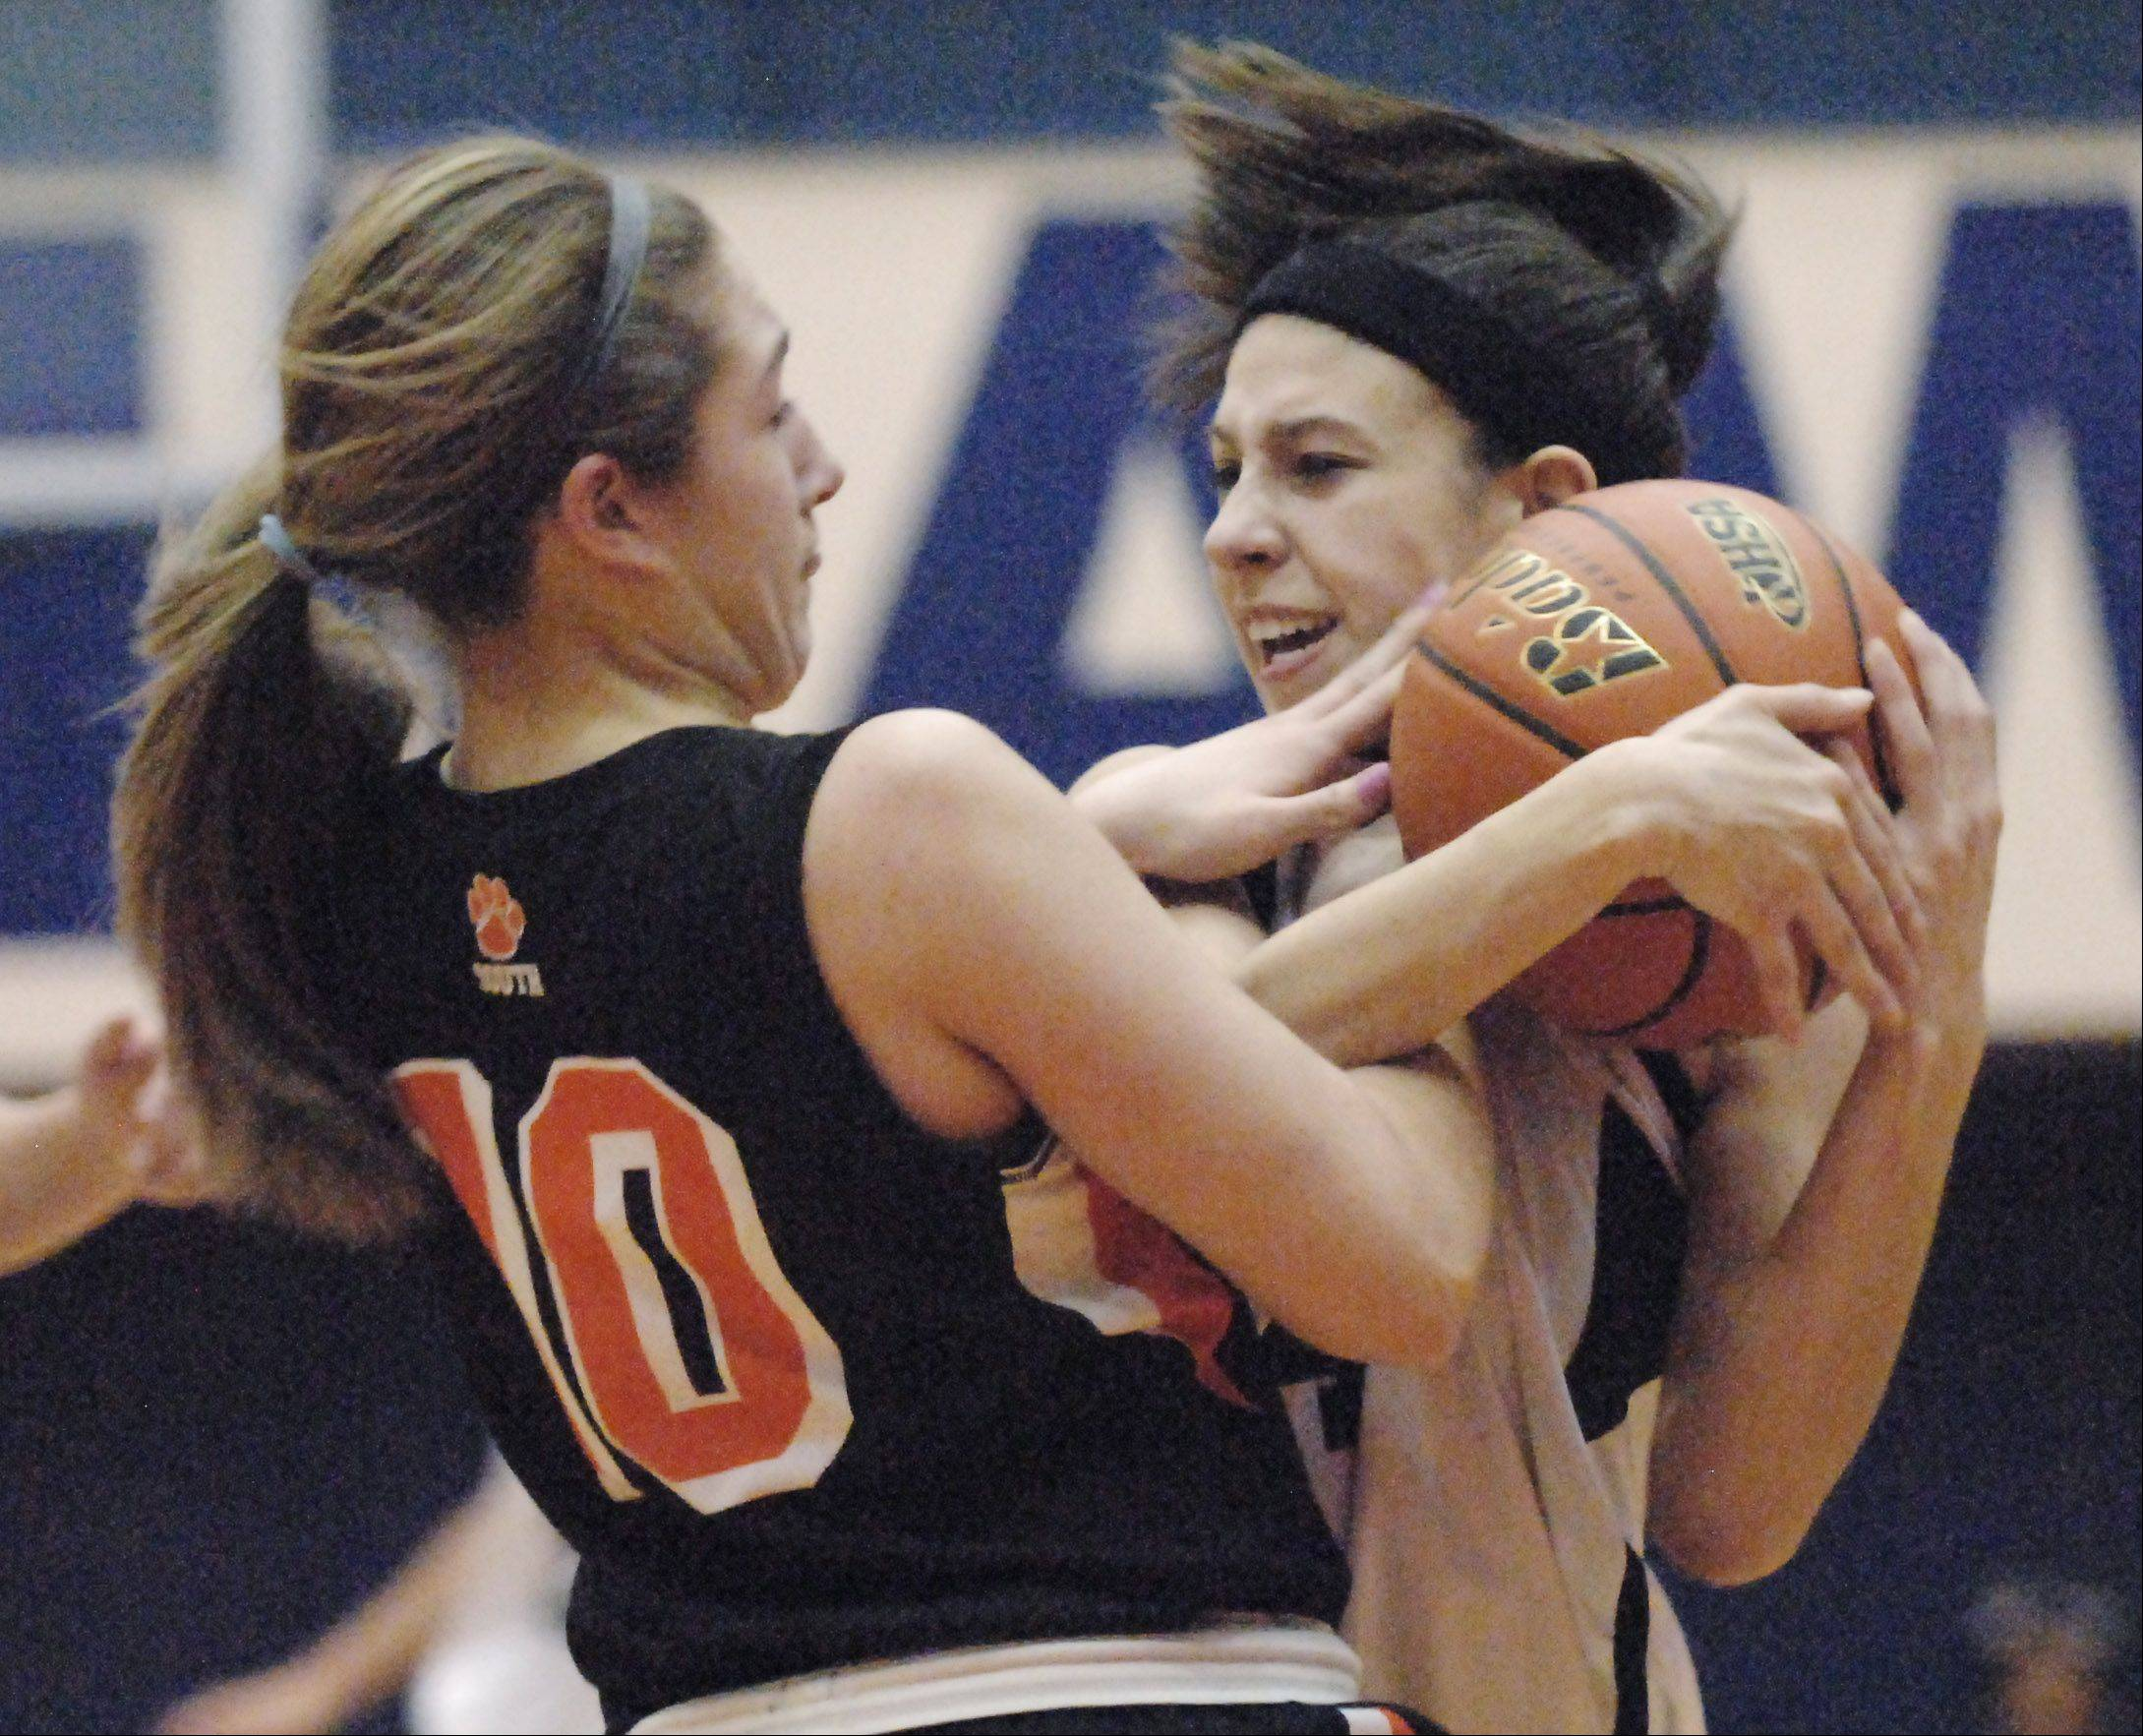 Bartlett's Janessa Baker, right, and Wheaton Warrenville South's Sierra Bisso struggle for the ball during Thursday's Class 4A Hoffman Estates sectional championship game.